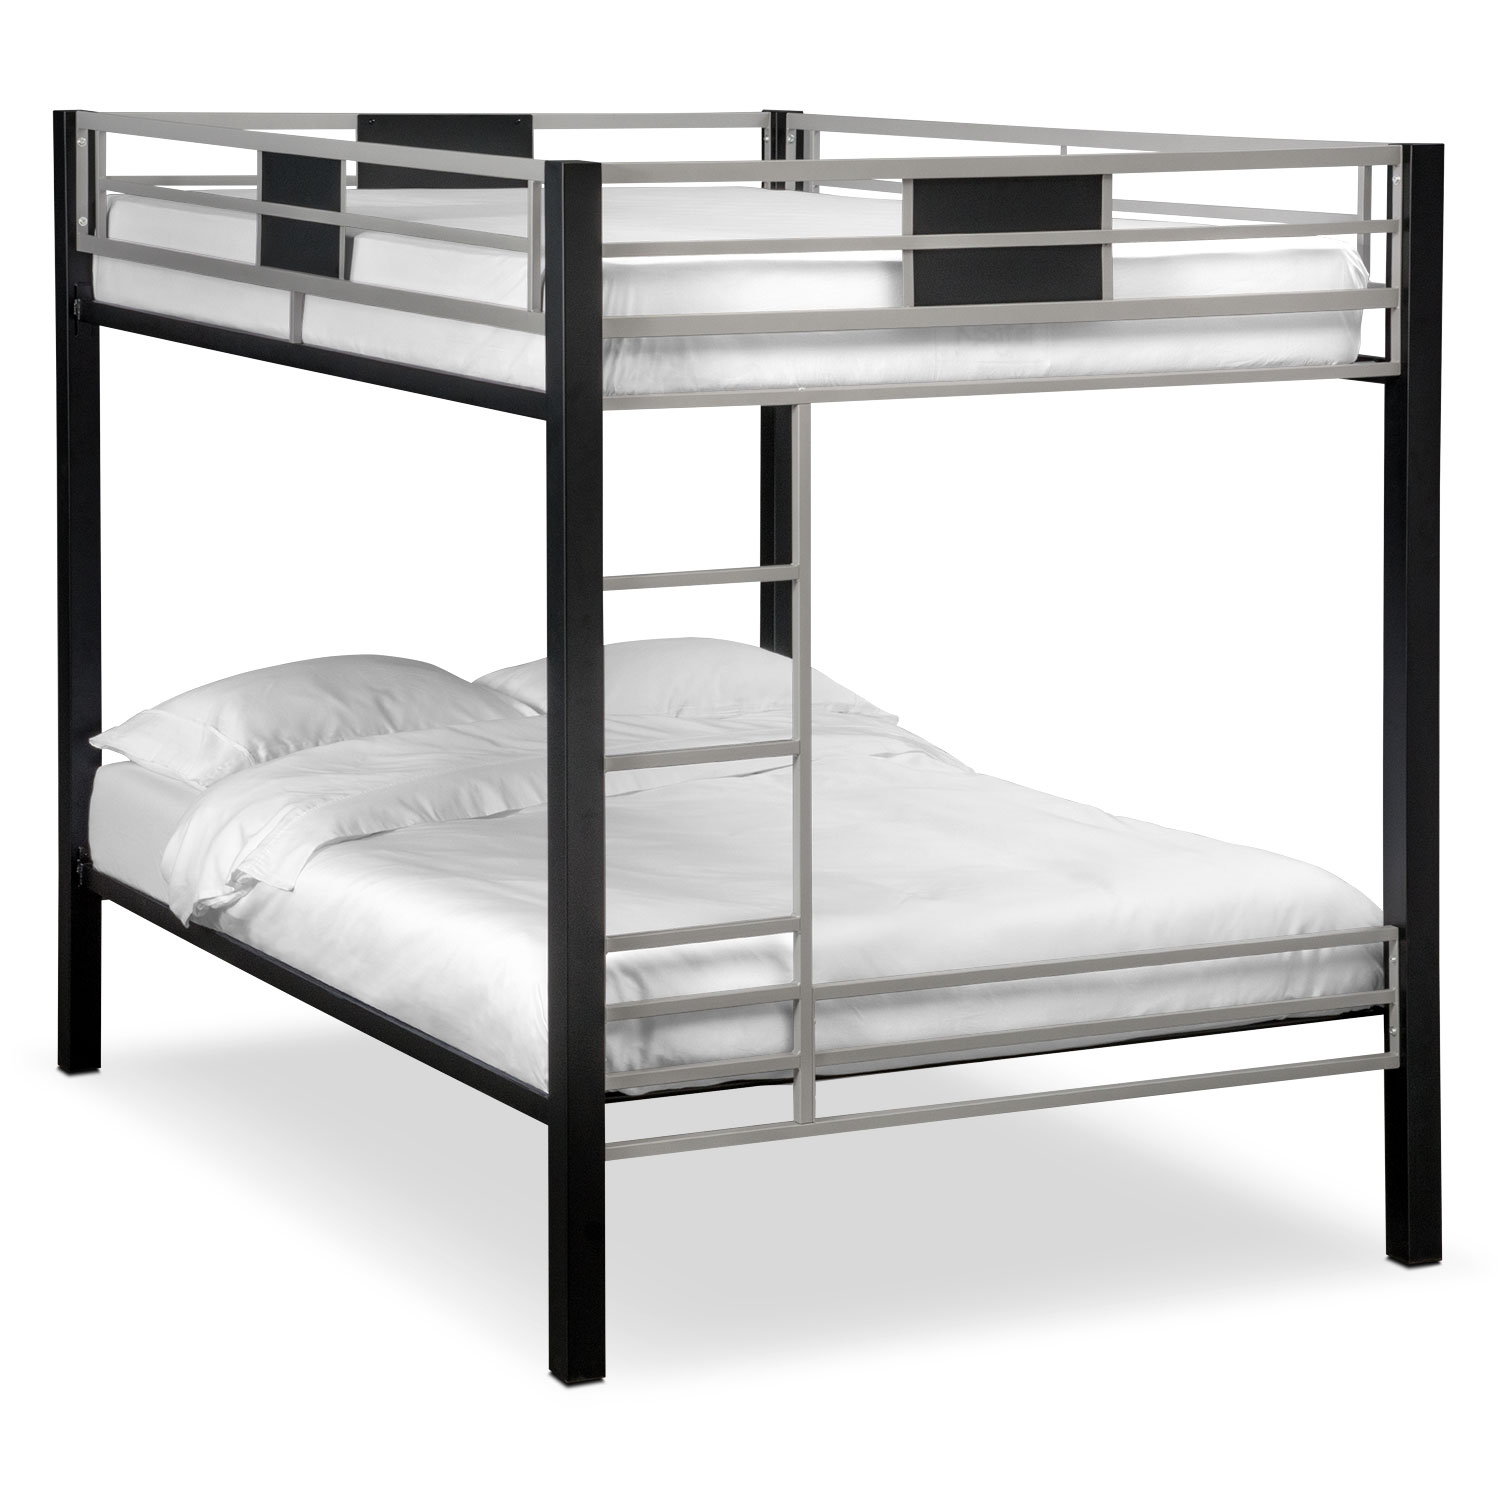 small bed full bunk cheap solid loft for crib with adults best beds mattress rooms wood trundle